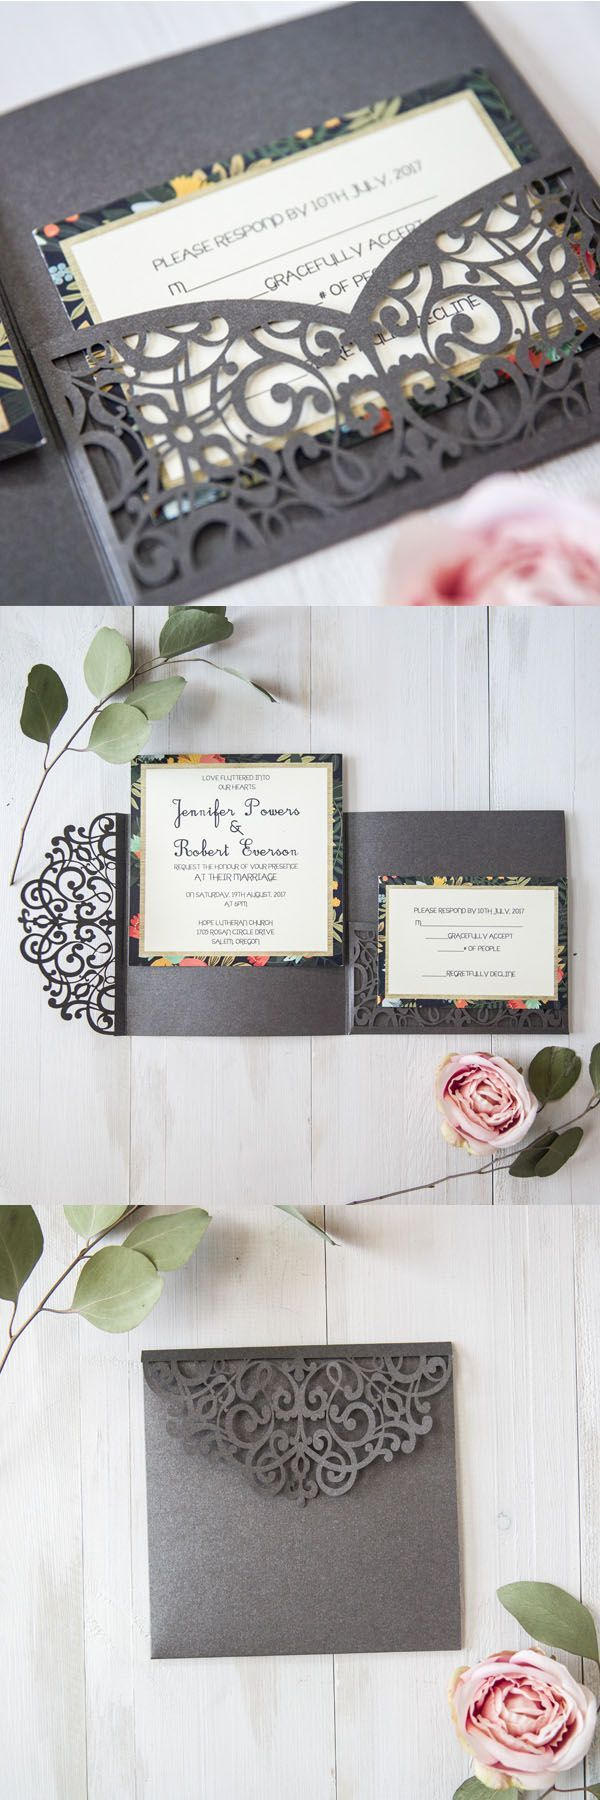 394 Best Craft Ideas Wedding Cards And Programs Images On